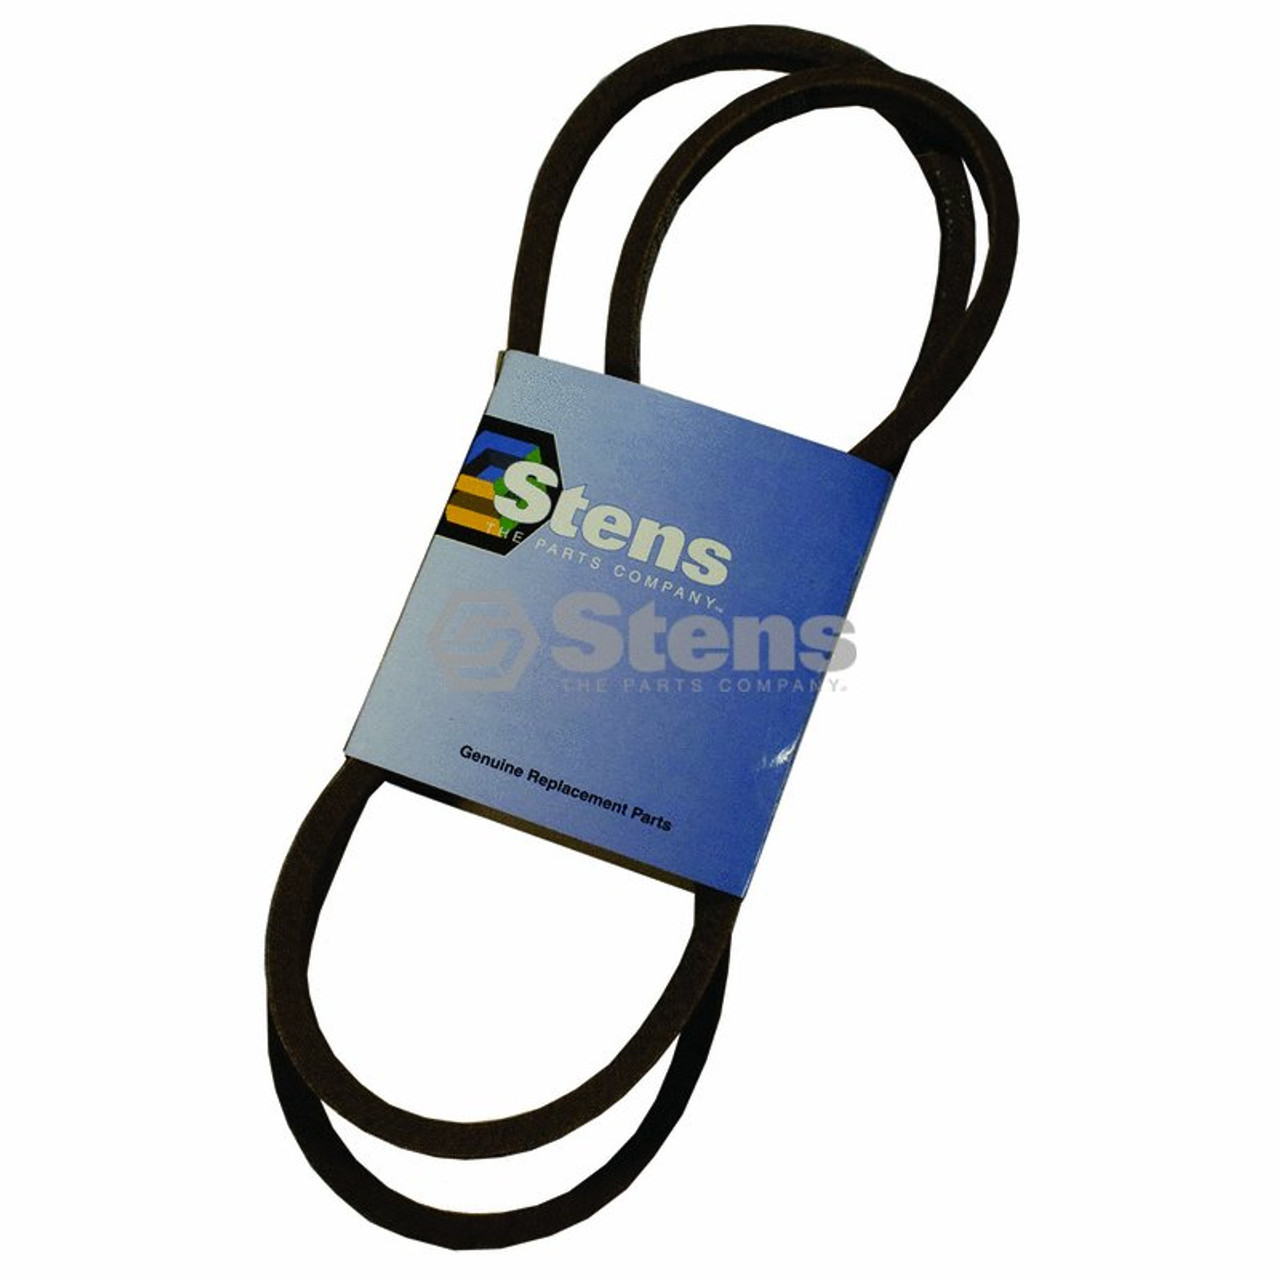 71460074 New Stens OEM Replacement Belt 265-973 for Wright Mfg